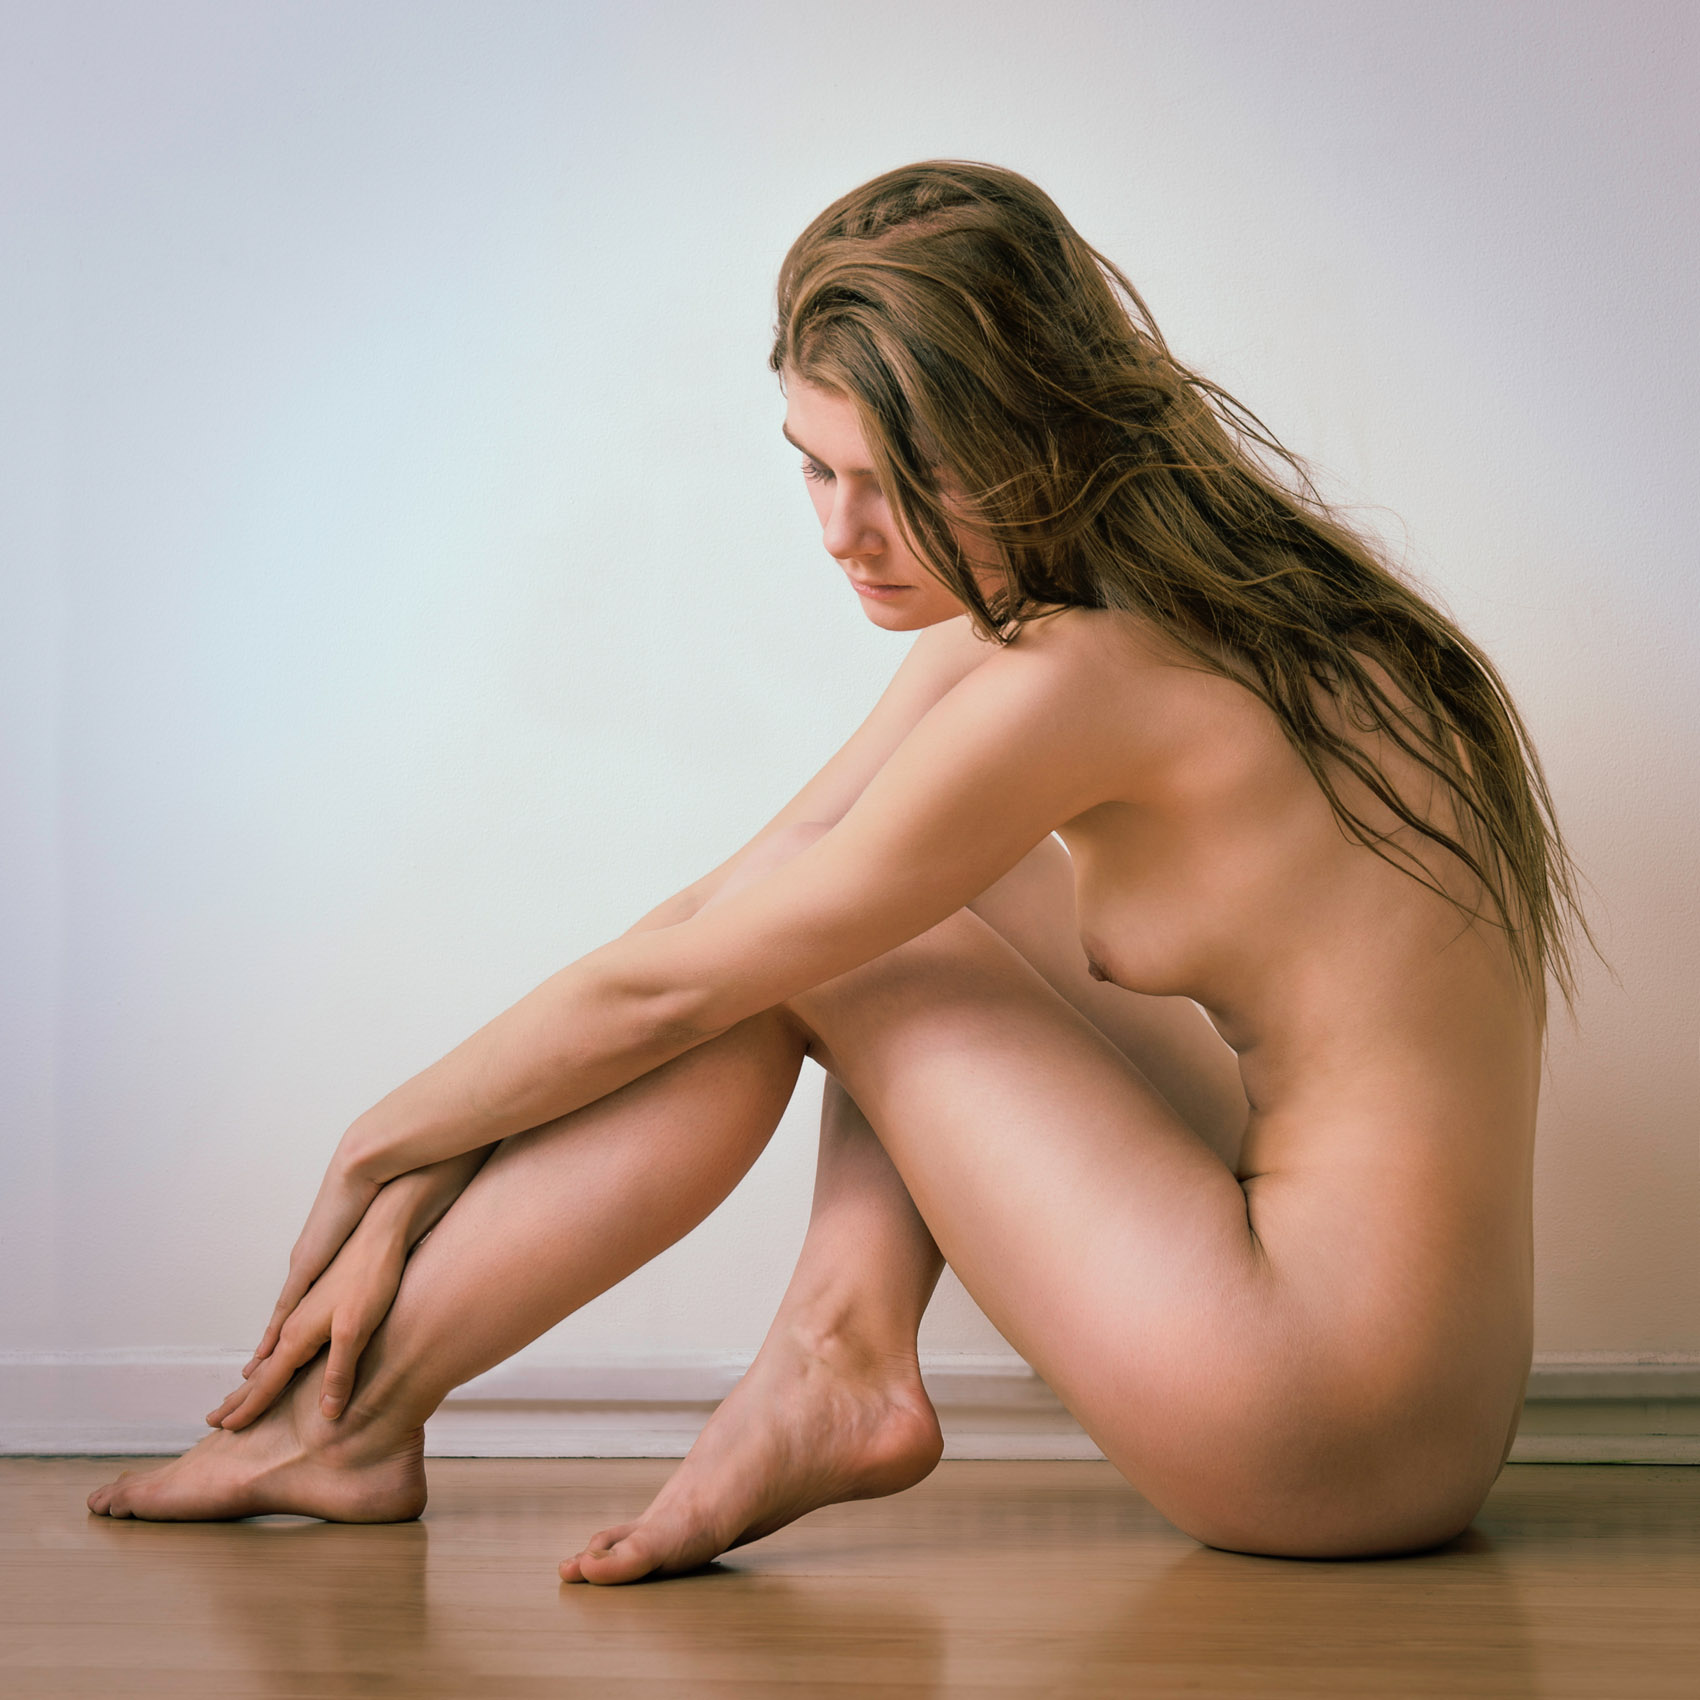 Nude artistic poses